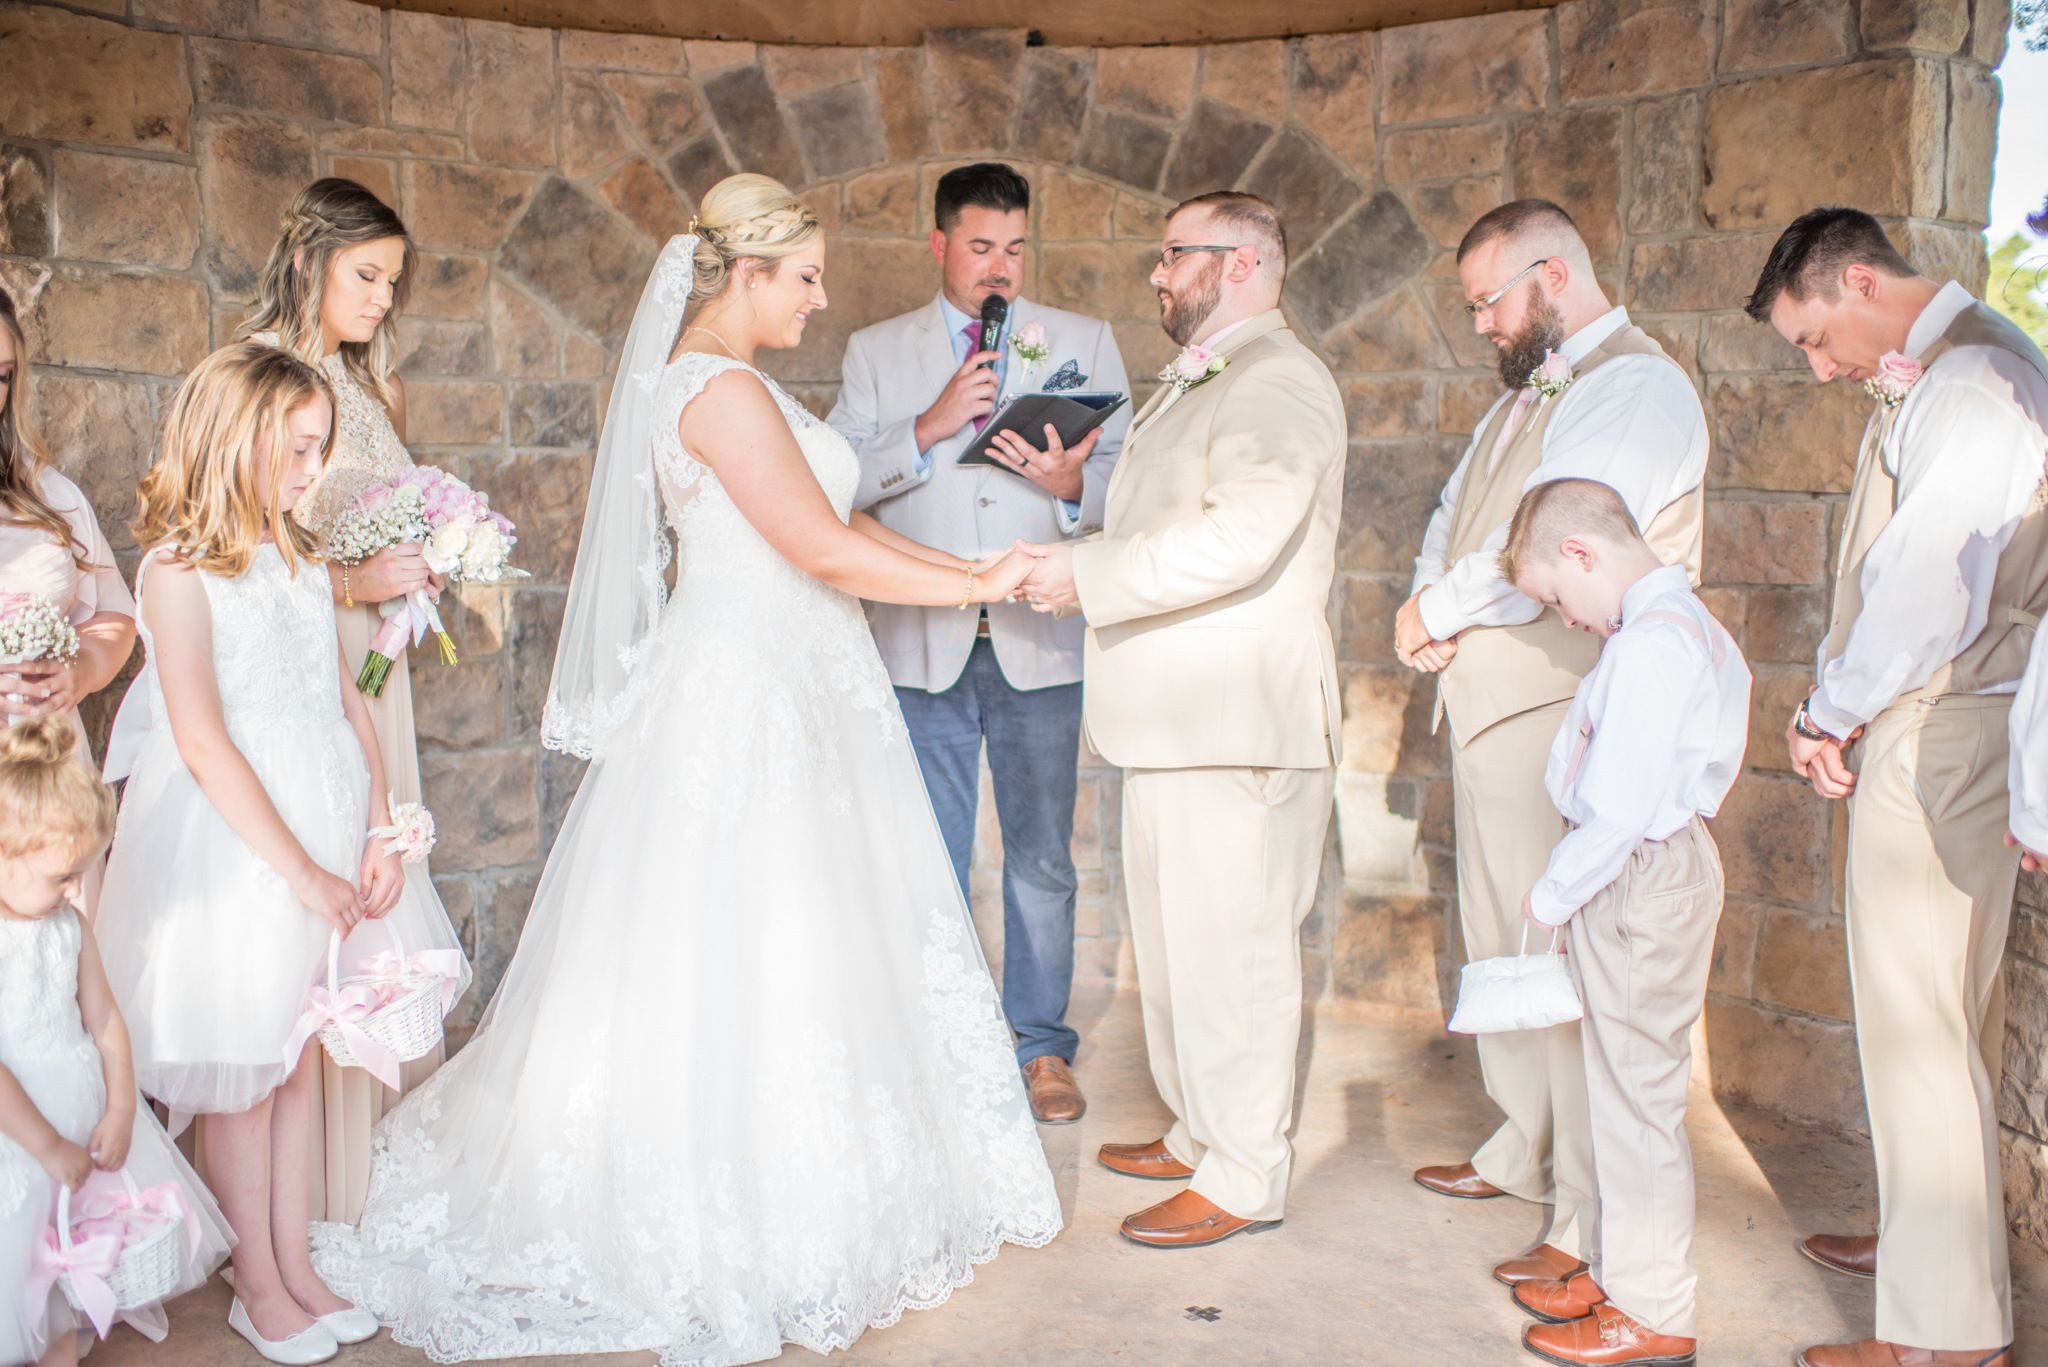 Courtney & Garrett- Oklahoma City, OK Castle Wedding